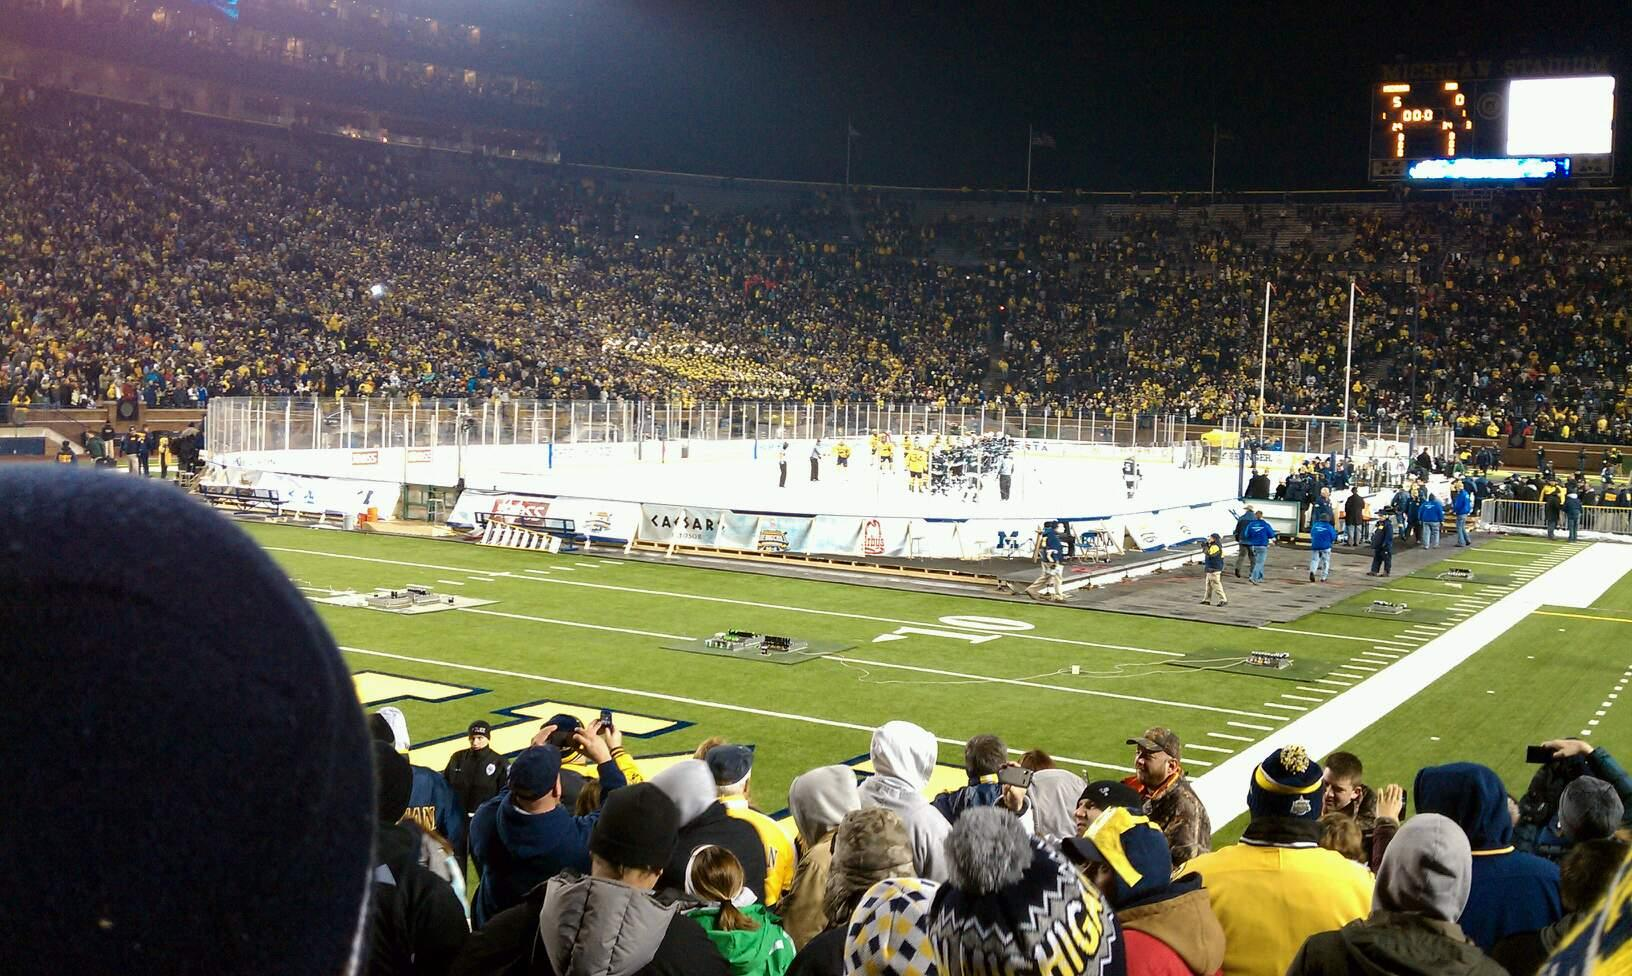 Michigan Stadium Section 9 Row 11 Seat 4